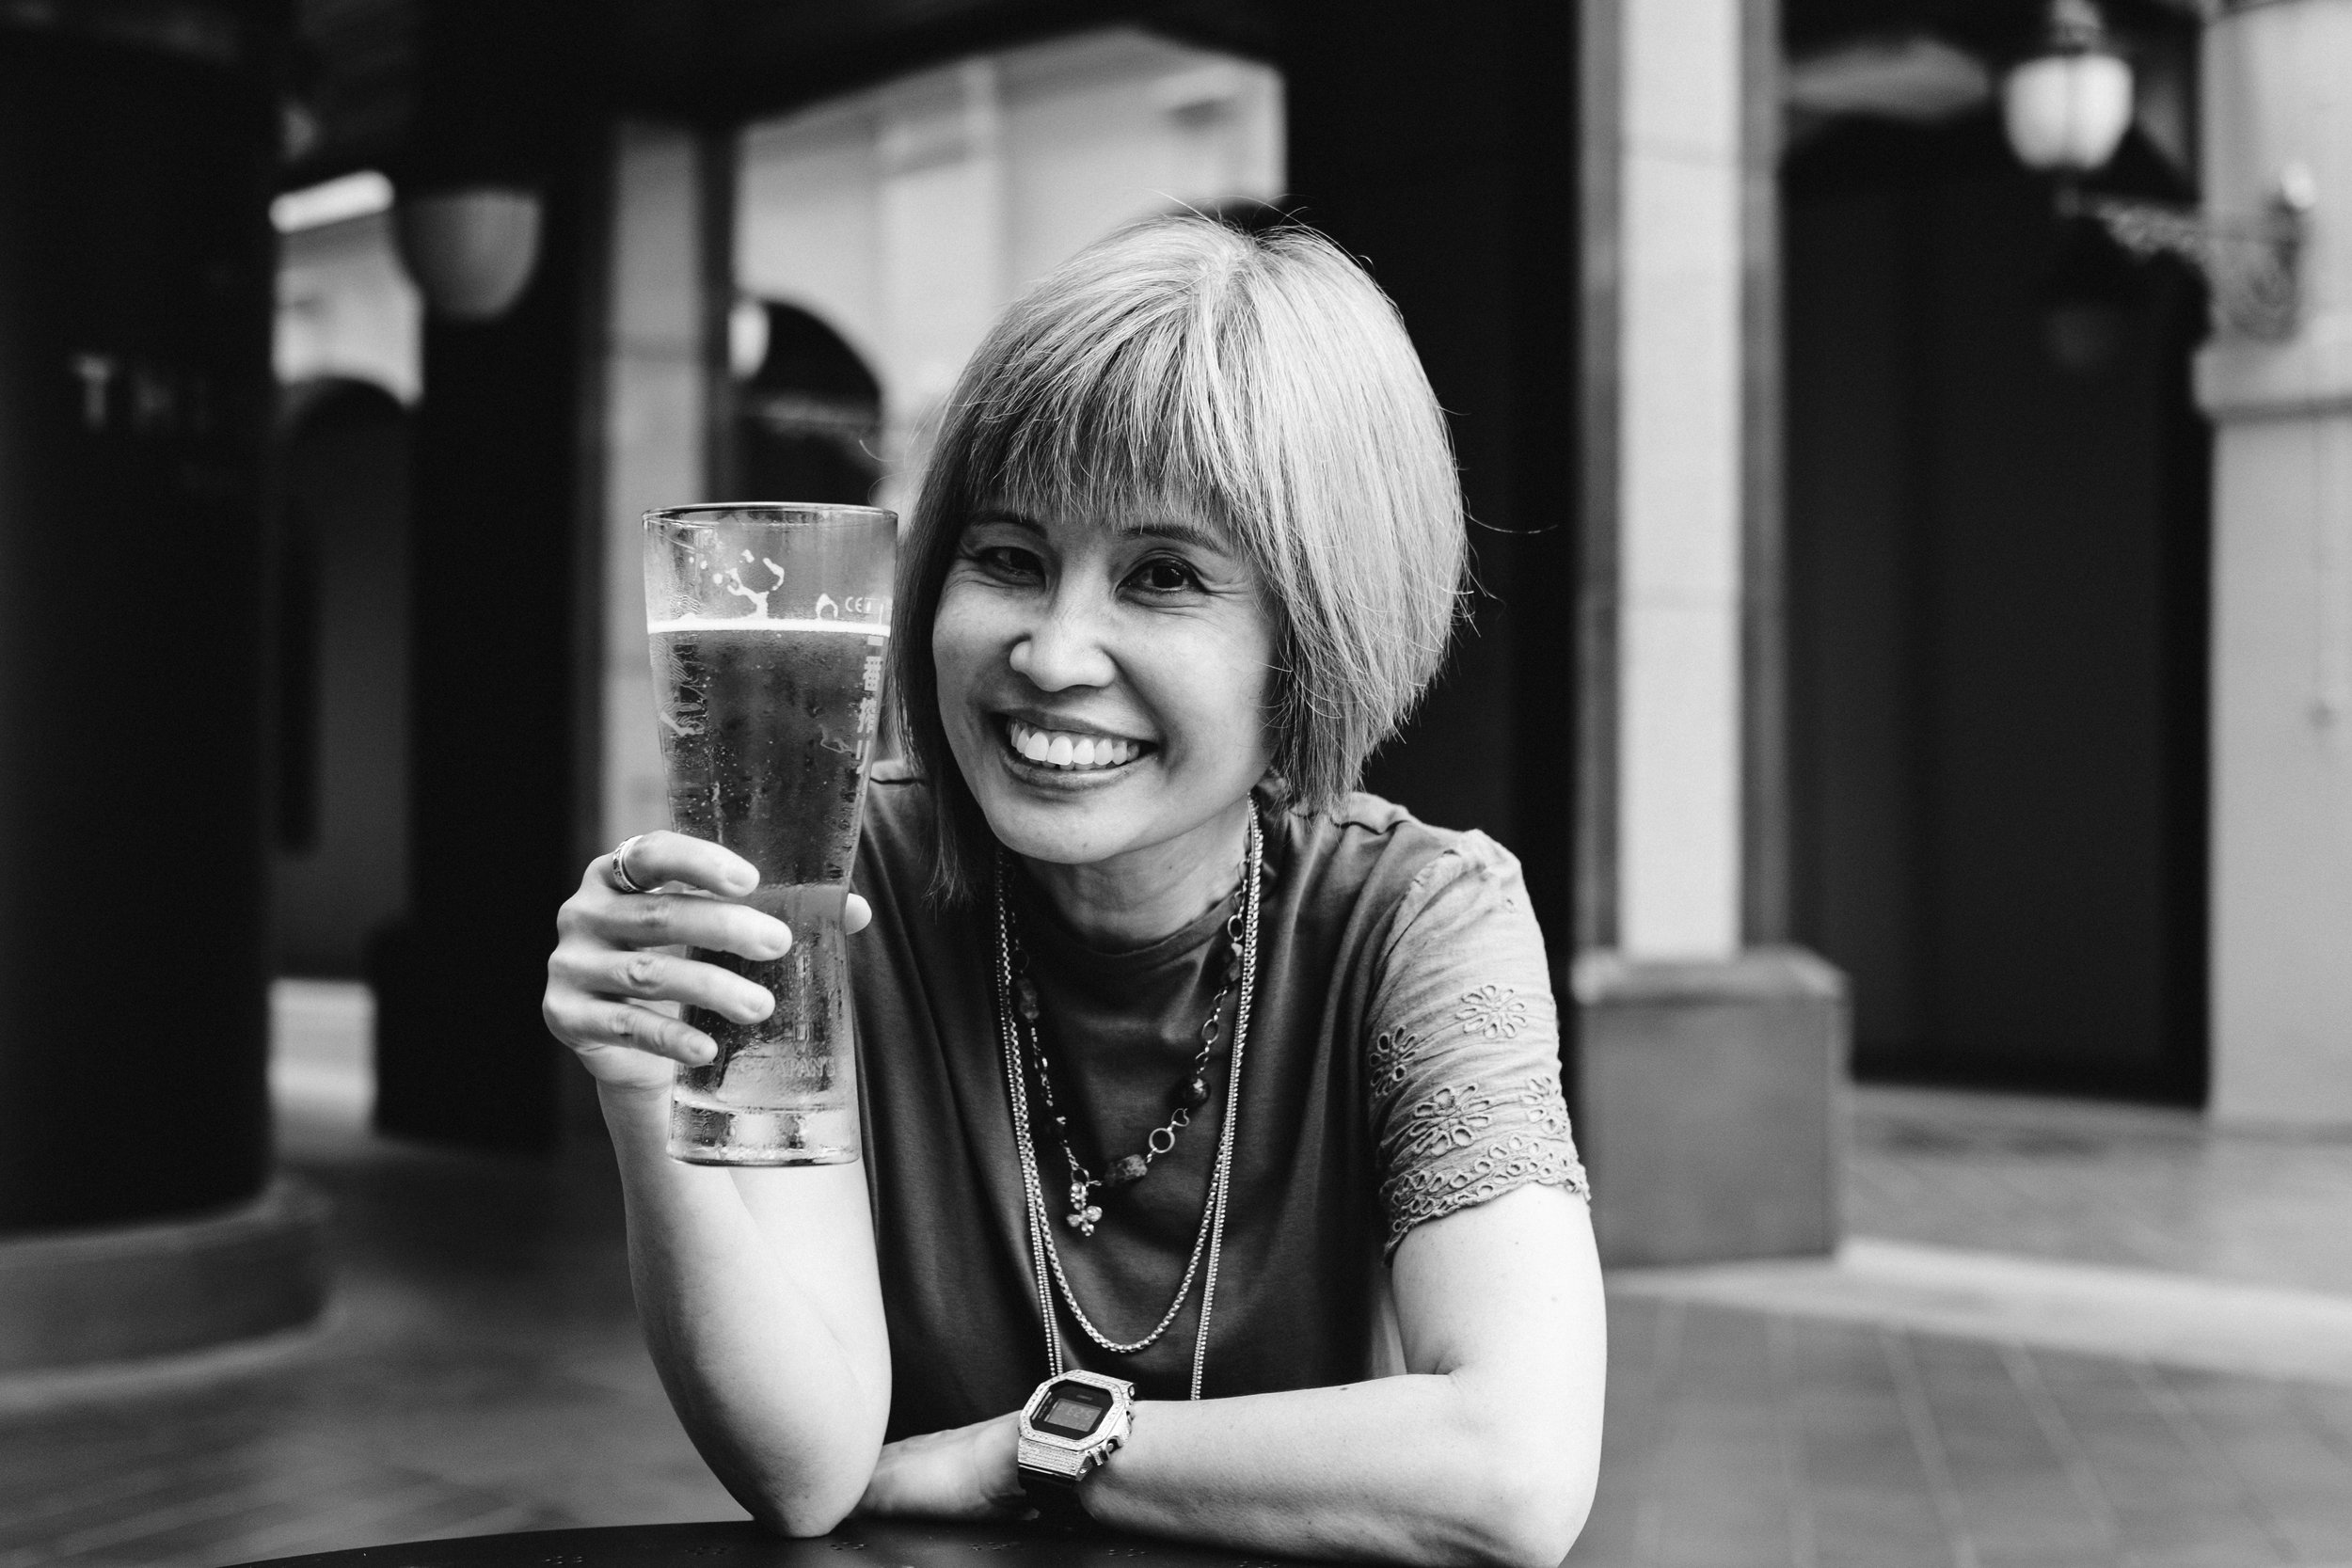 Baby boomer drinking pint of beer